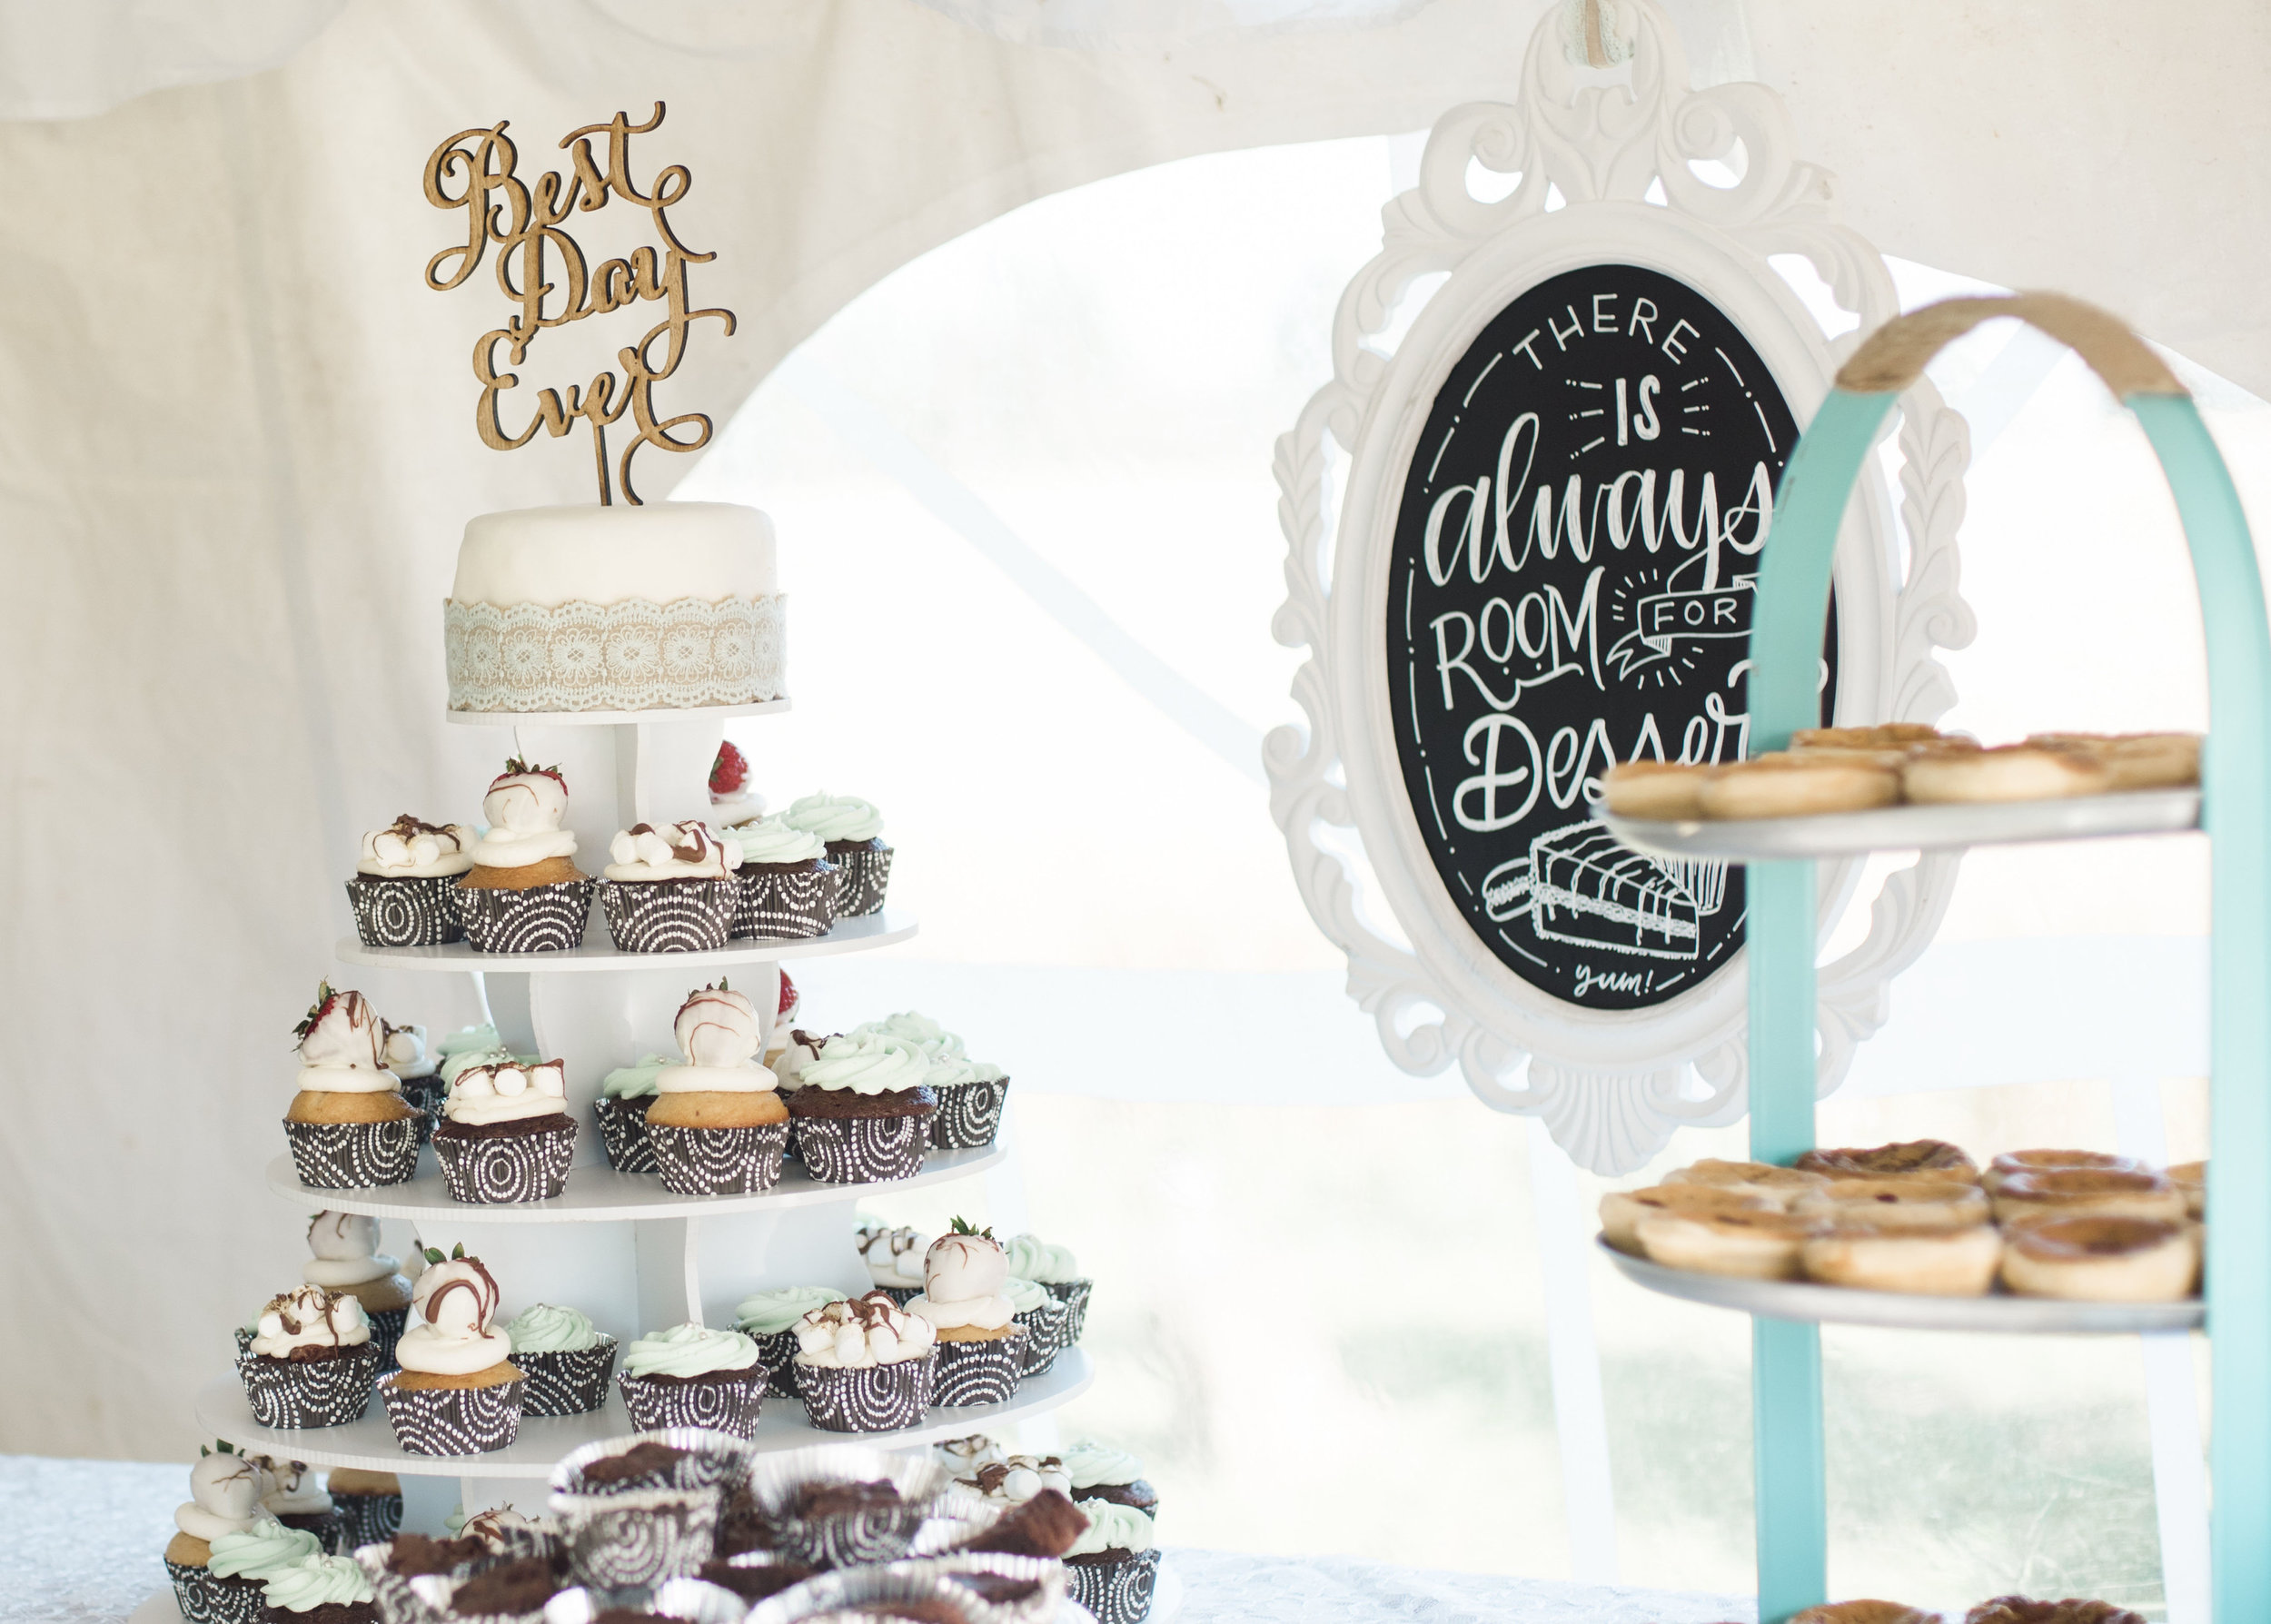 """A fun wooden """"best day ever"""" cake topper for the perfect dessert display decoration."""